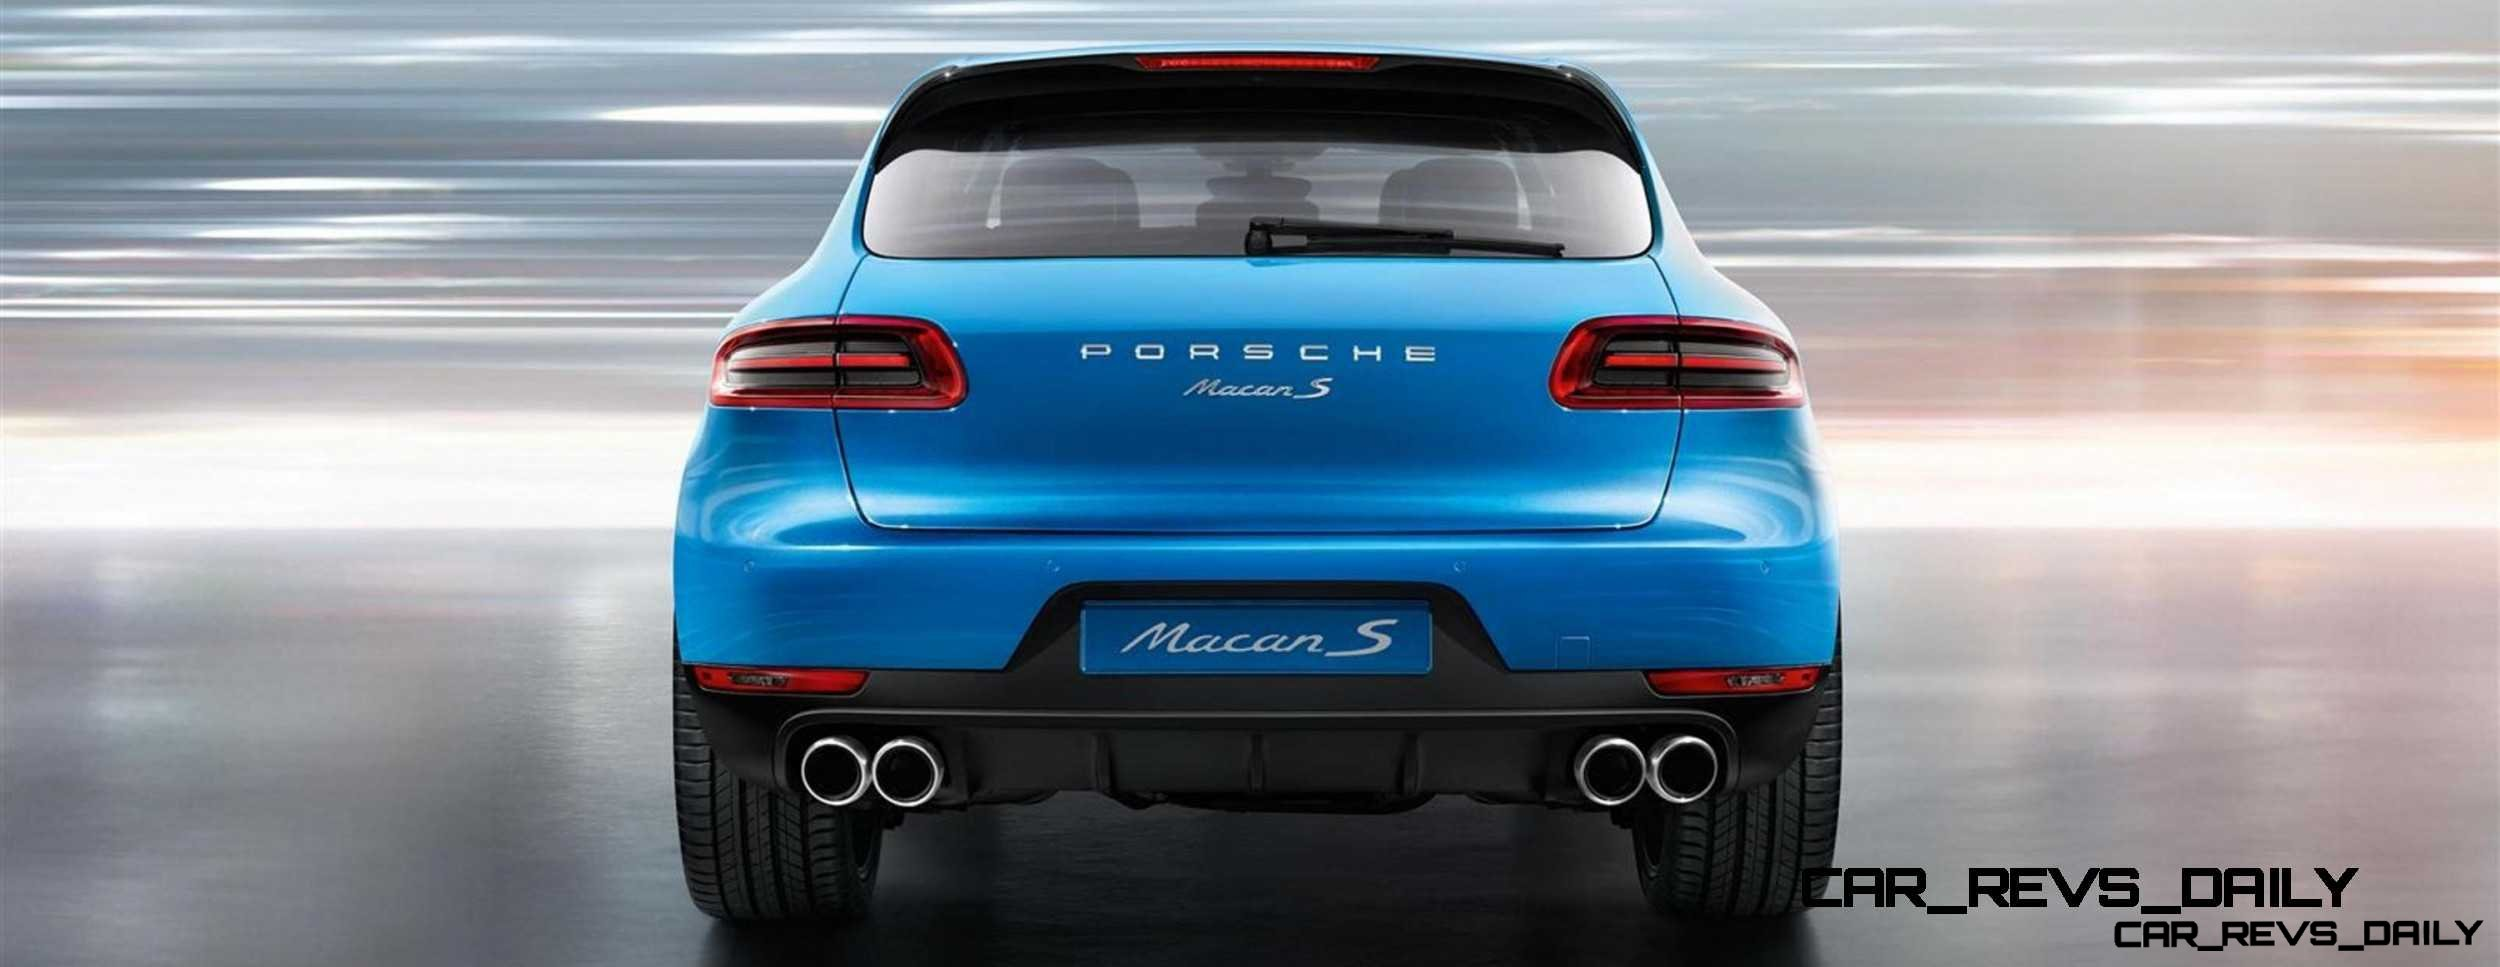 2015 Porsche Macan - Latest Images - CarRevsDaily.com 96